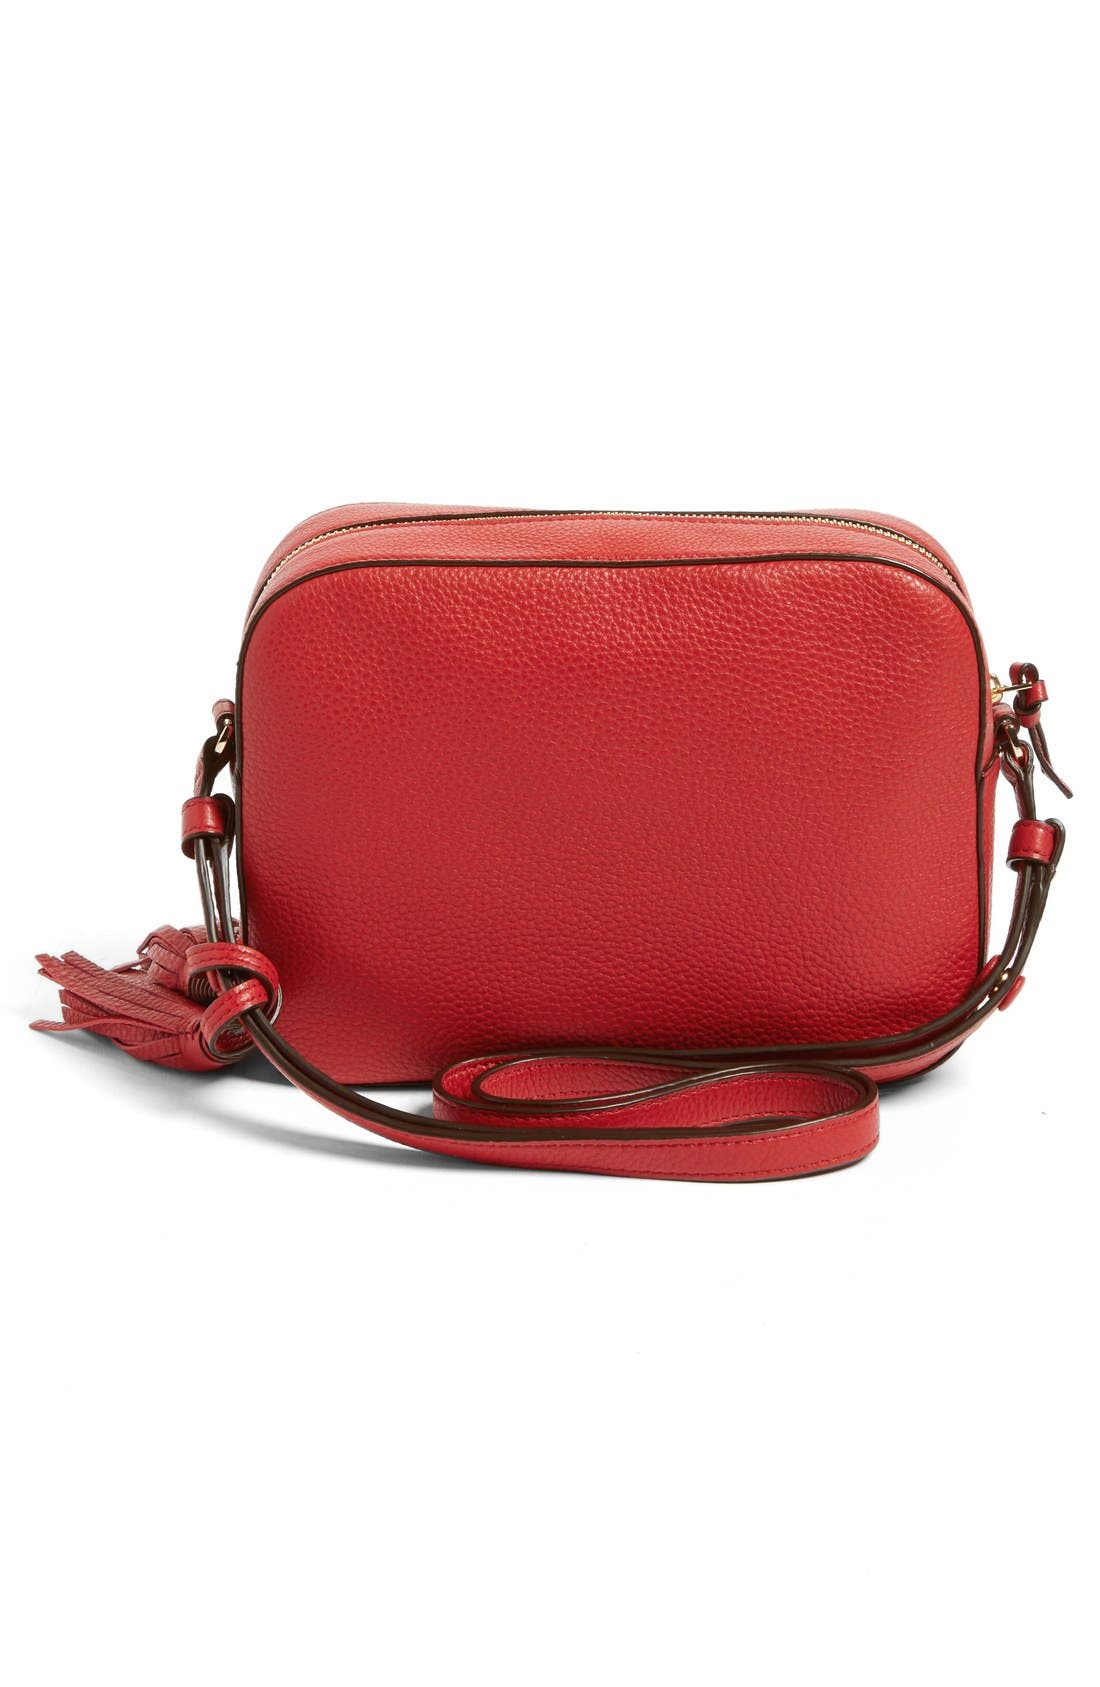 Alternate Image 3  - Tory Burch 'Thea' Leather Shoulder Bag